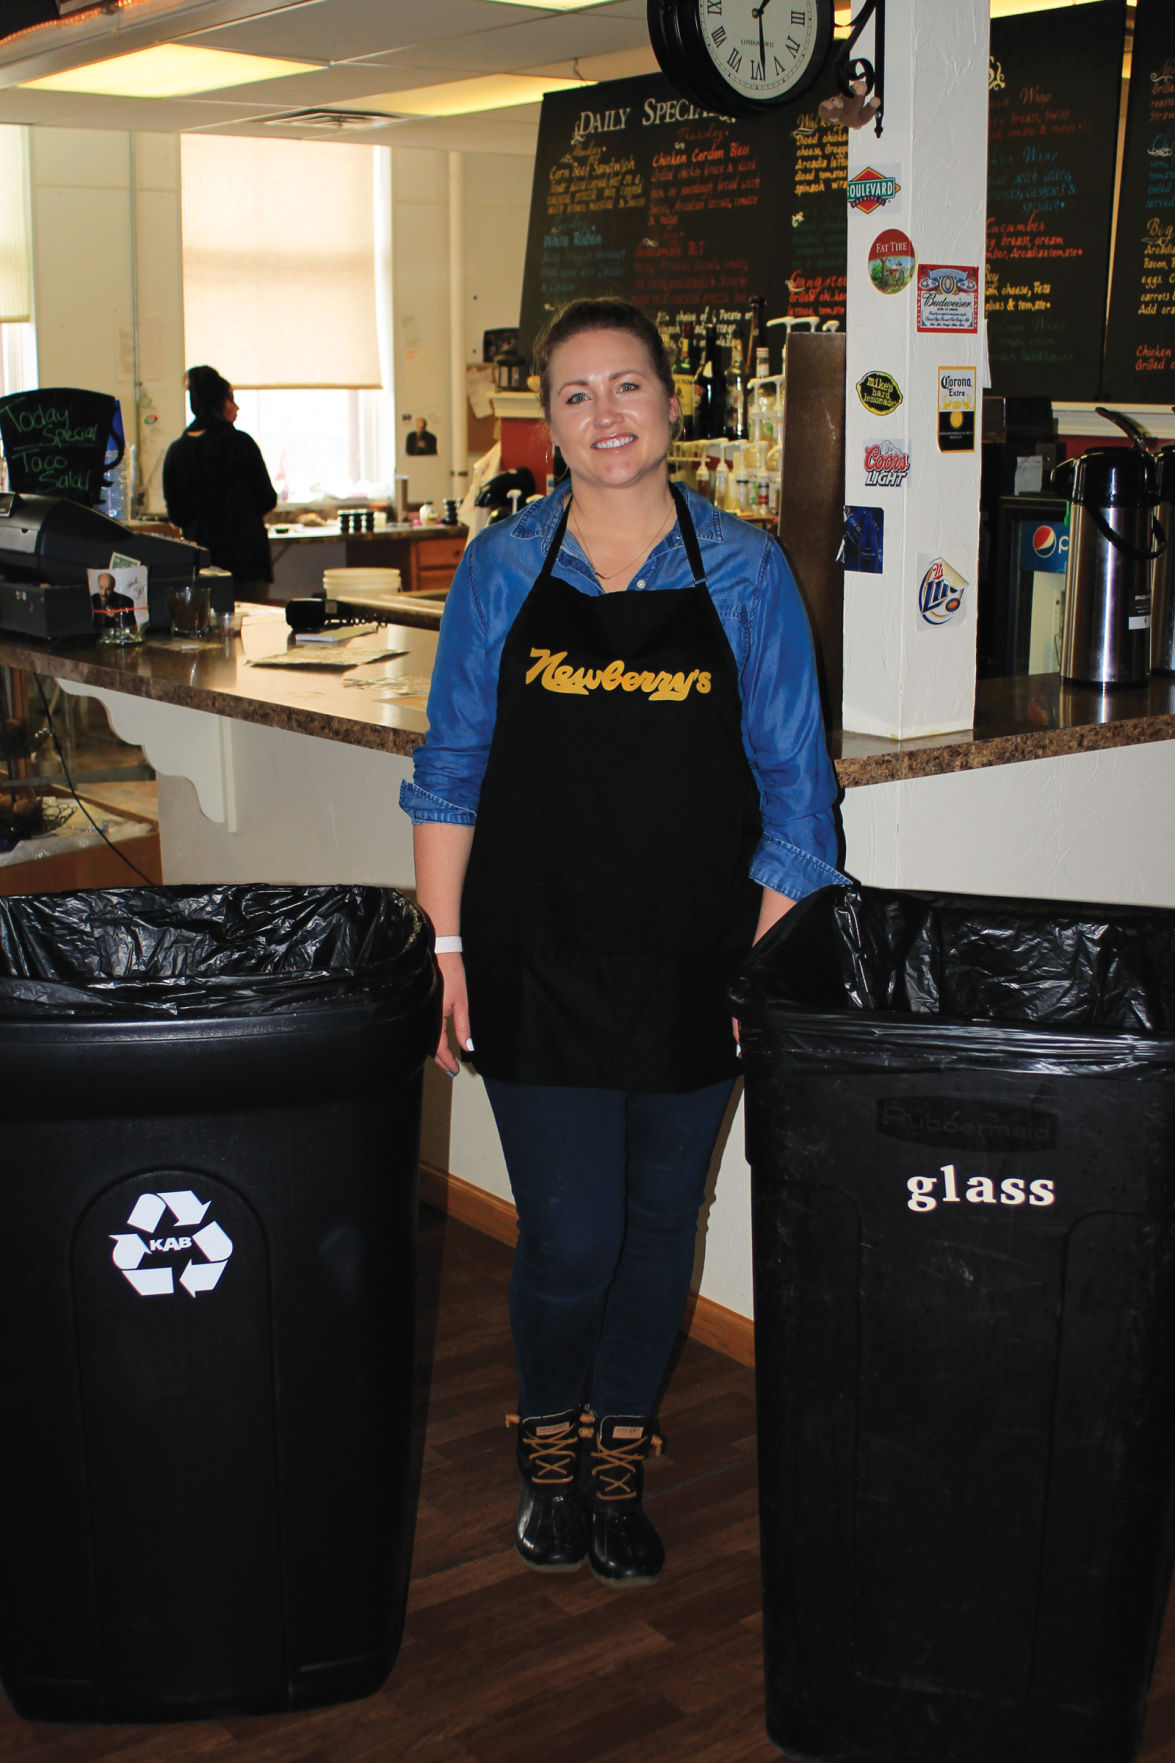 KEEP ALLIANCE BEAUTIFUL: Recycling At Newberry's